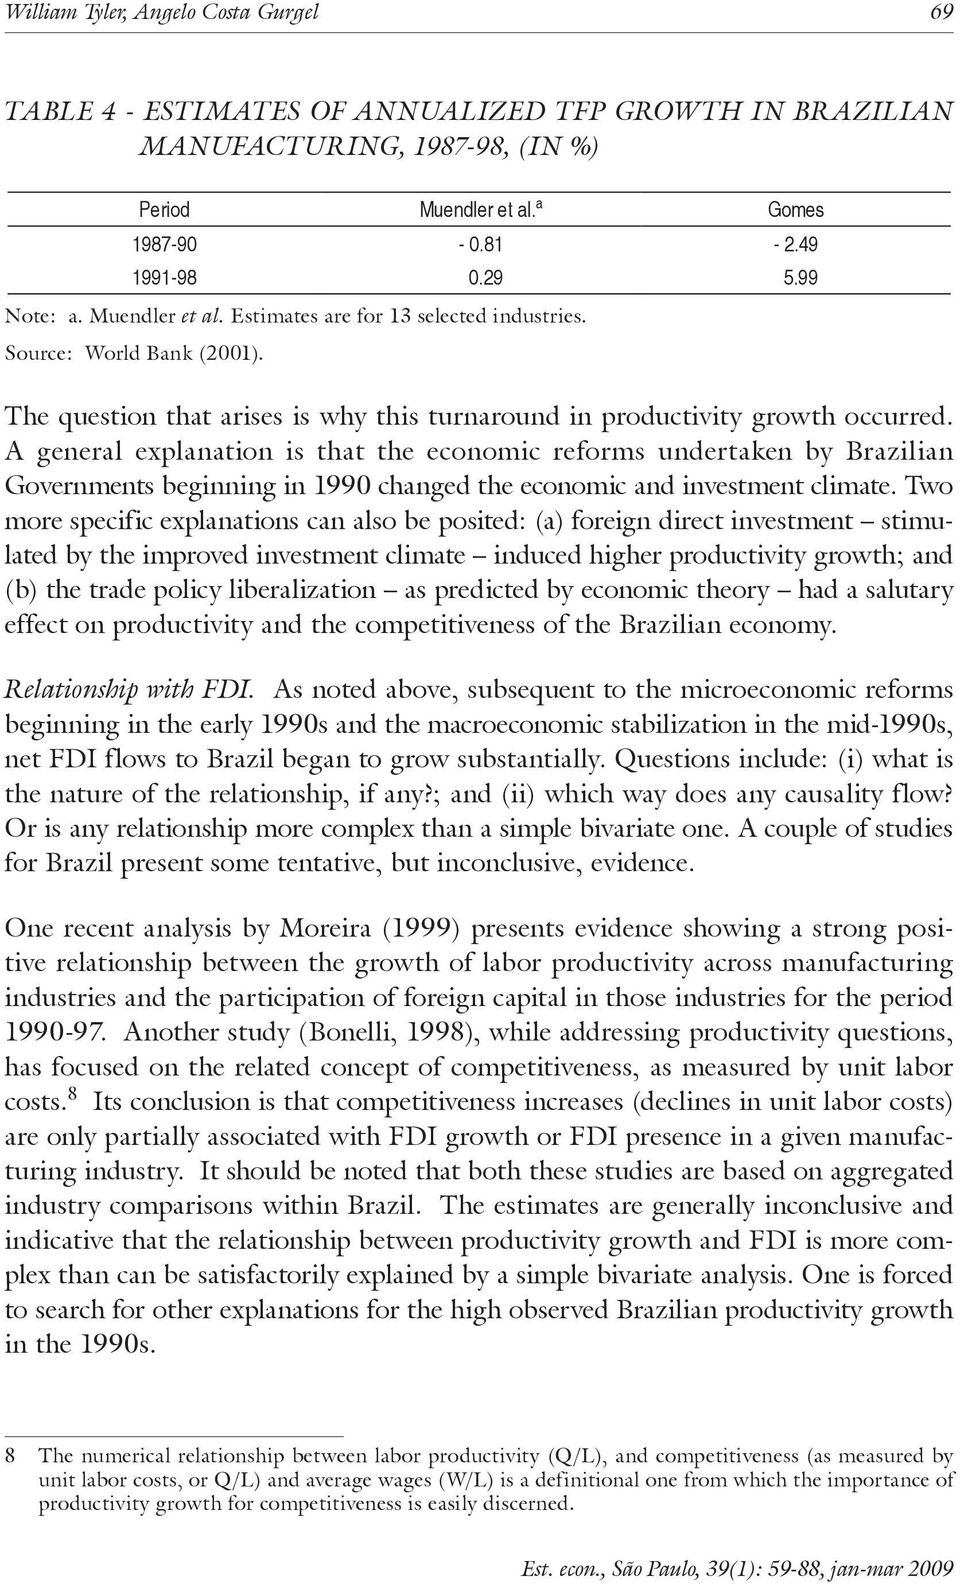 A general explanation is that the economic reforms undertaken by Brazilian Governments beginning in 1990 changed the economic and investment climate.